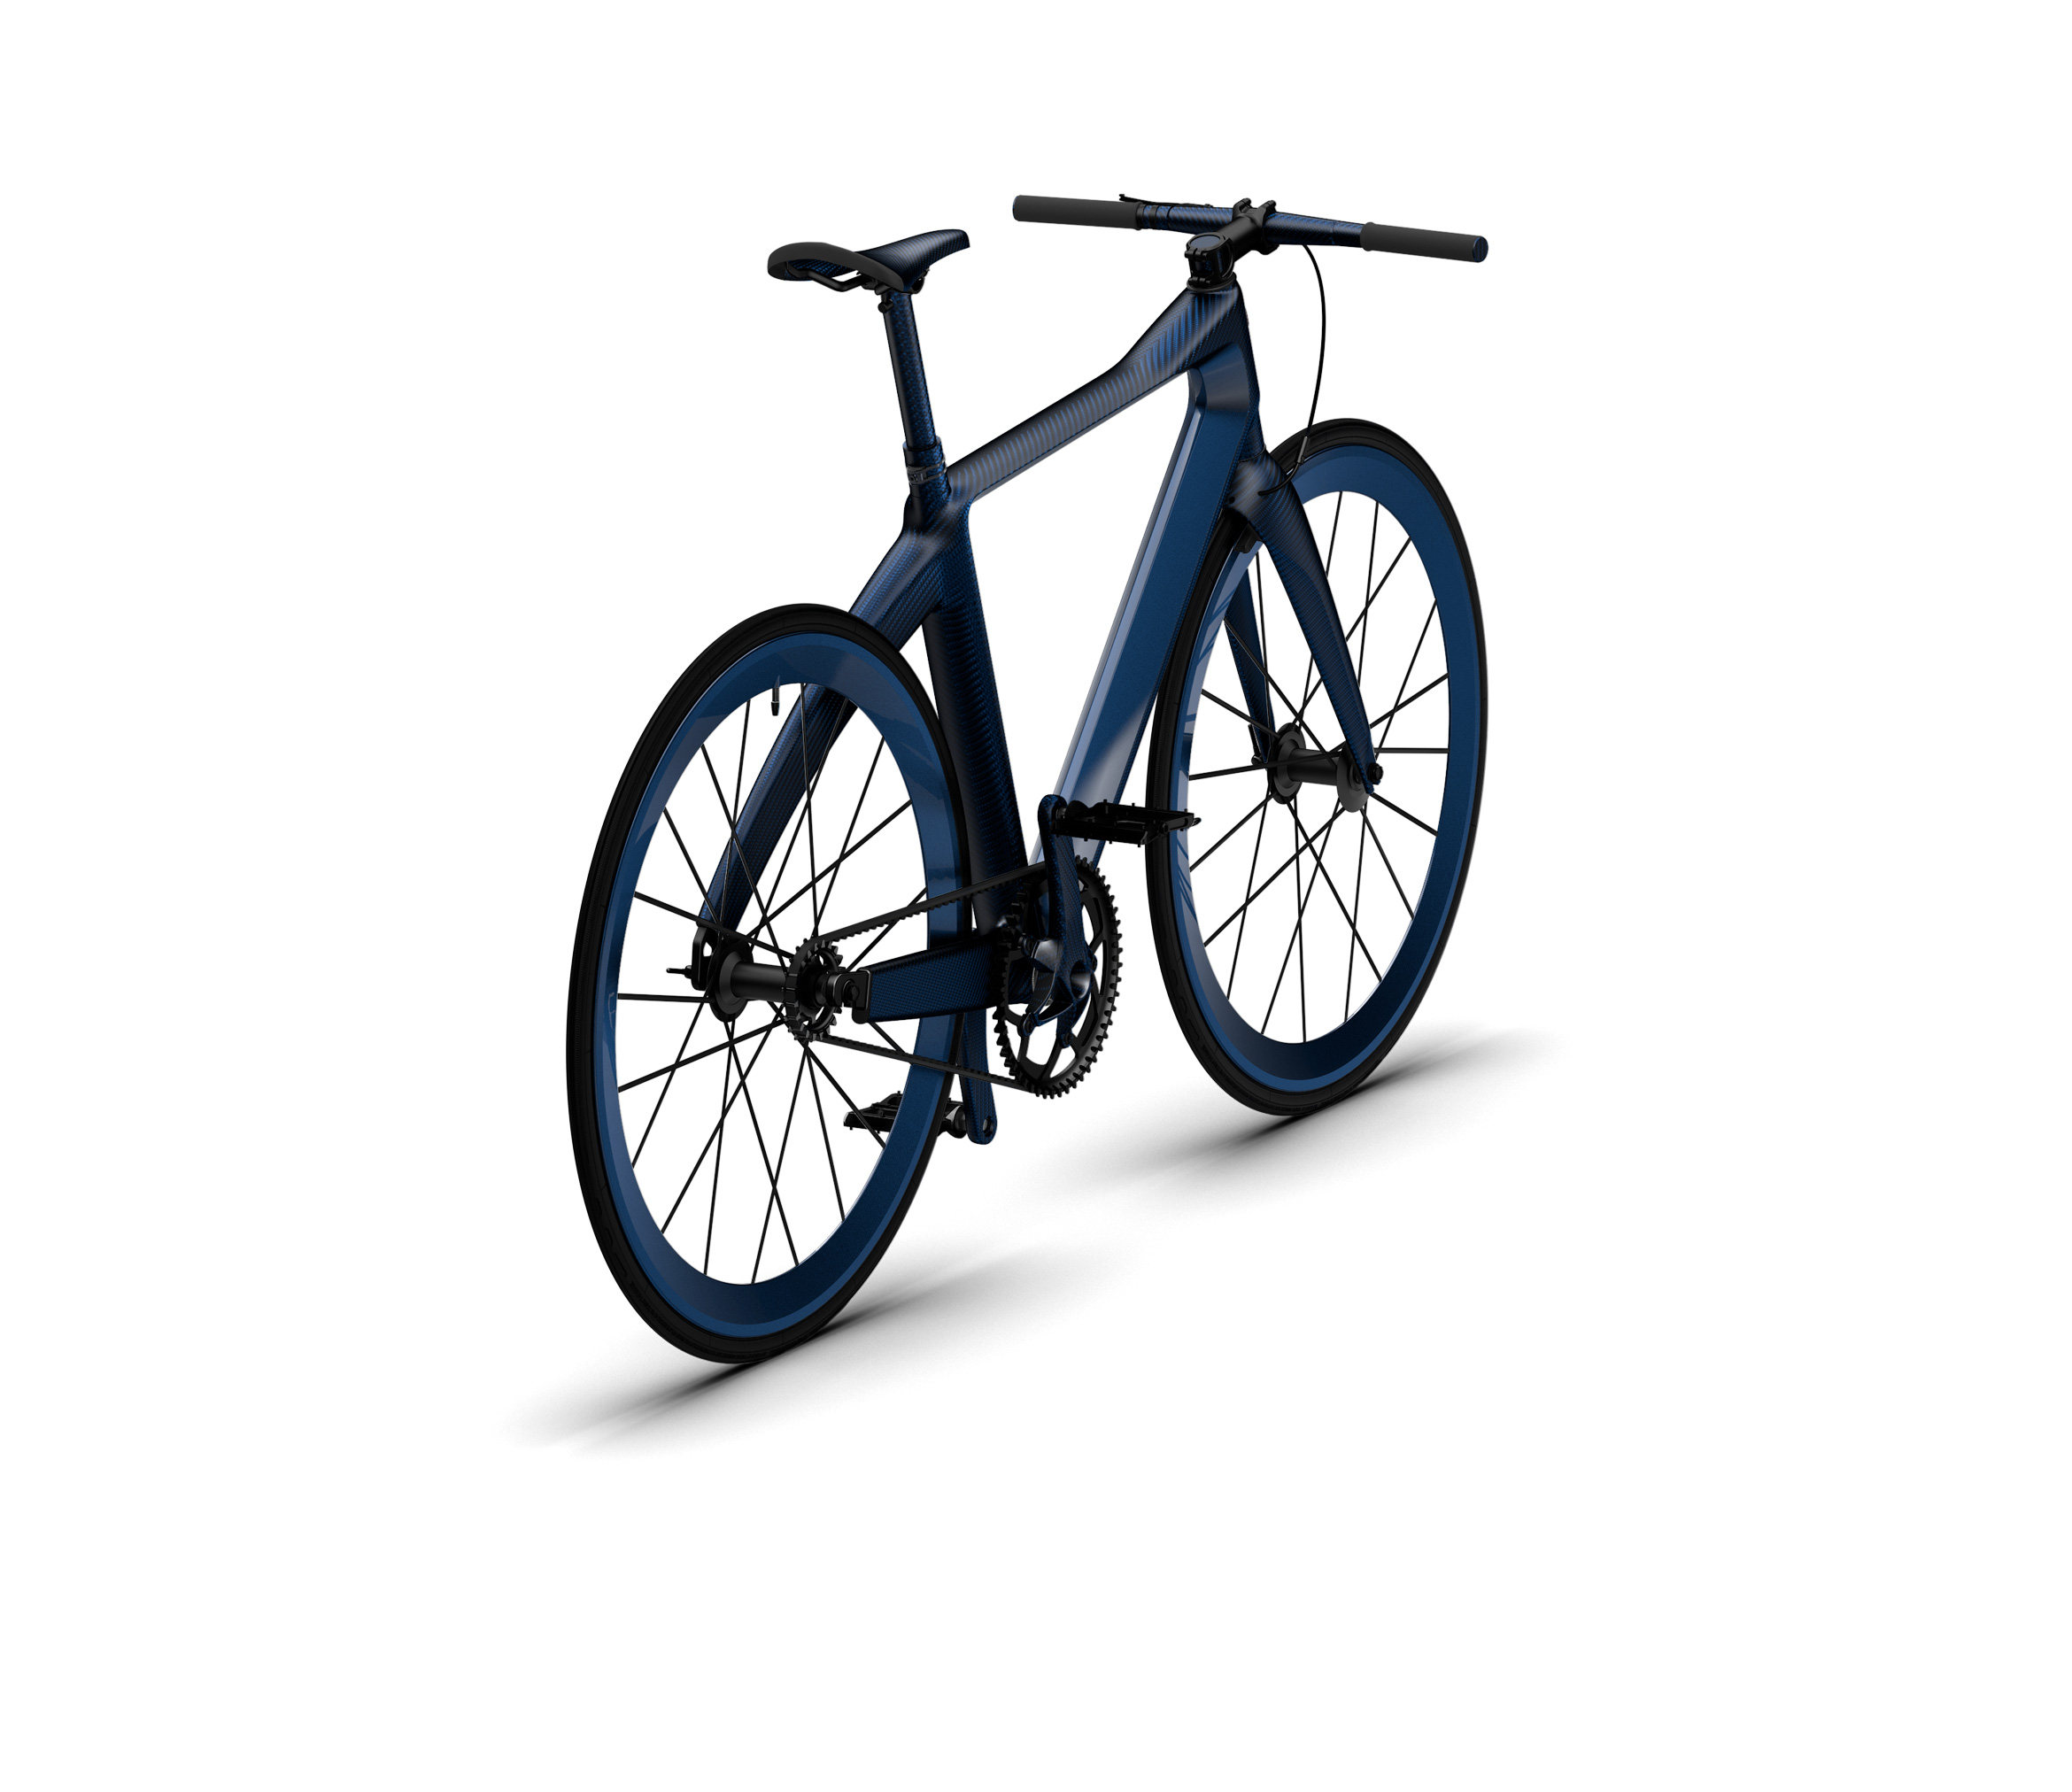 PG Bugatti bicycle (5)